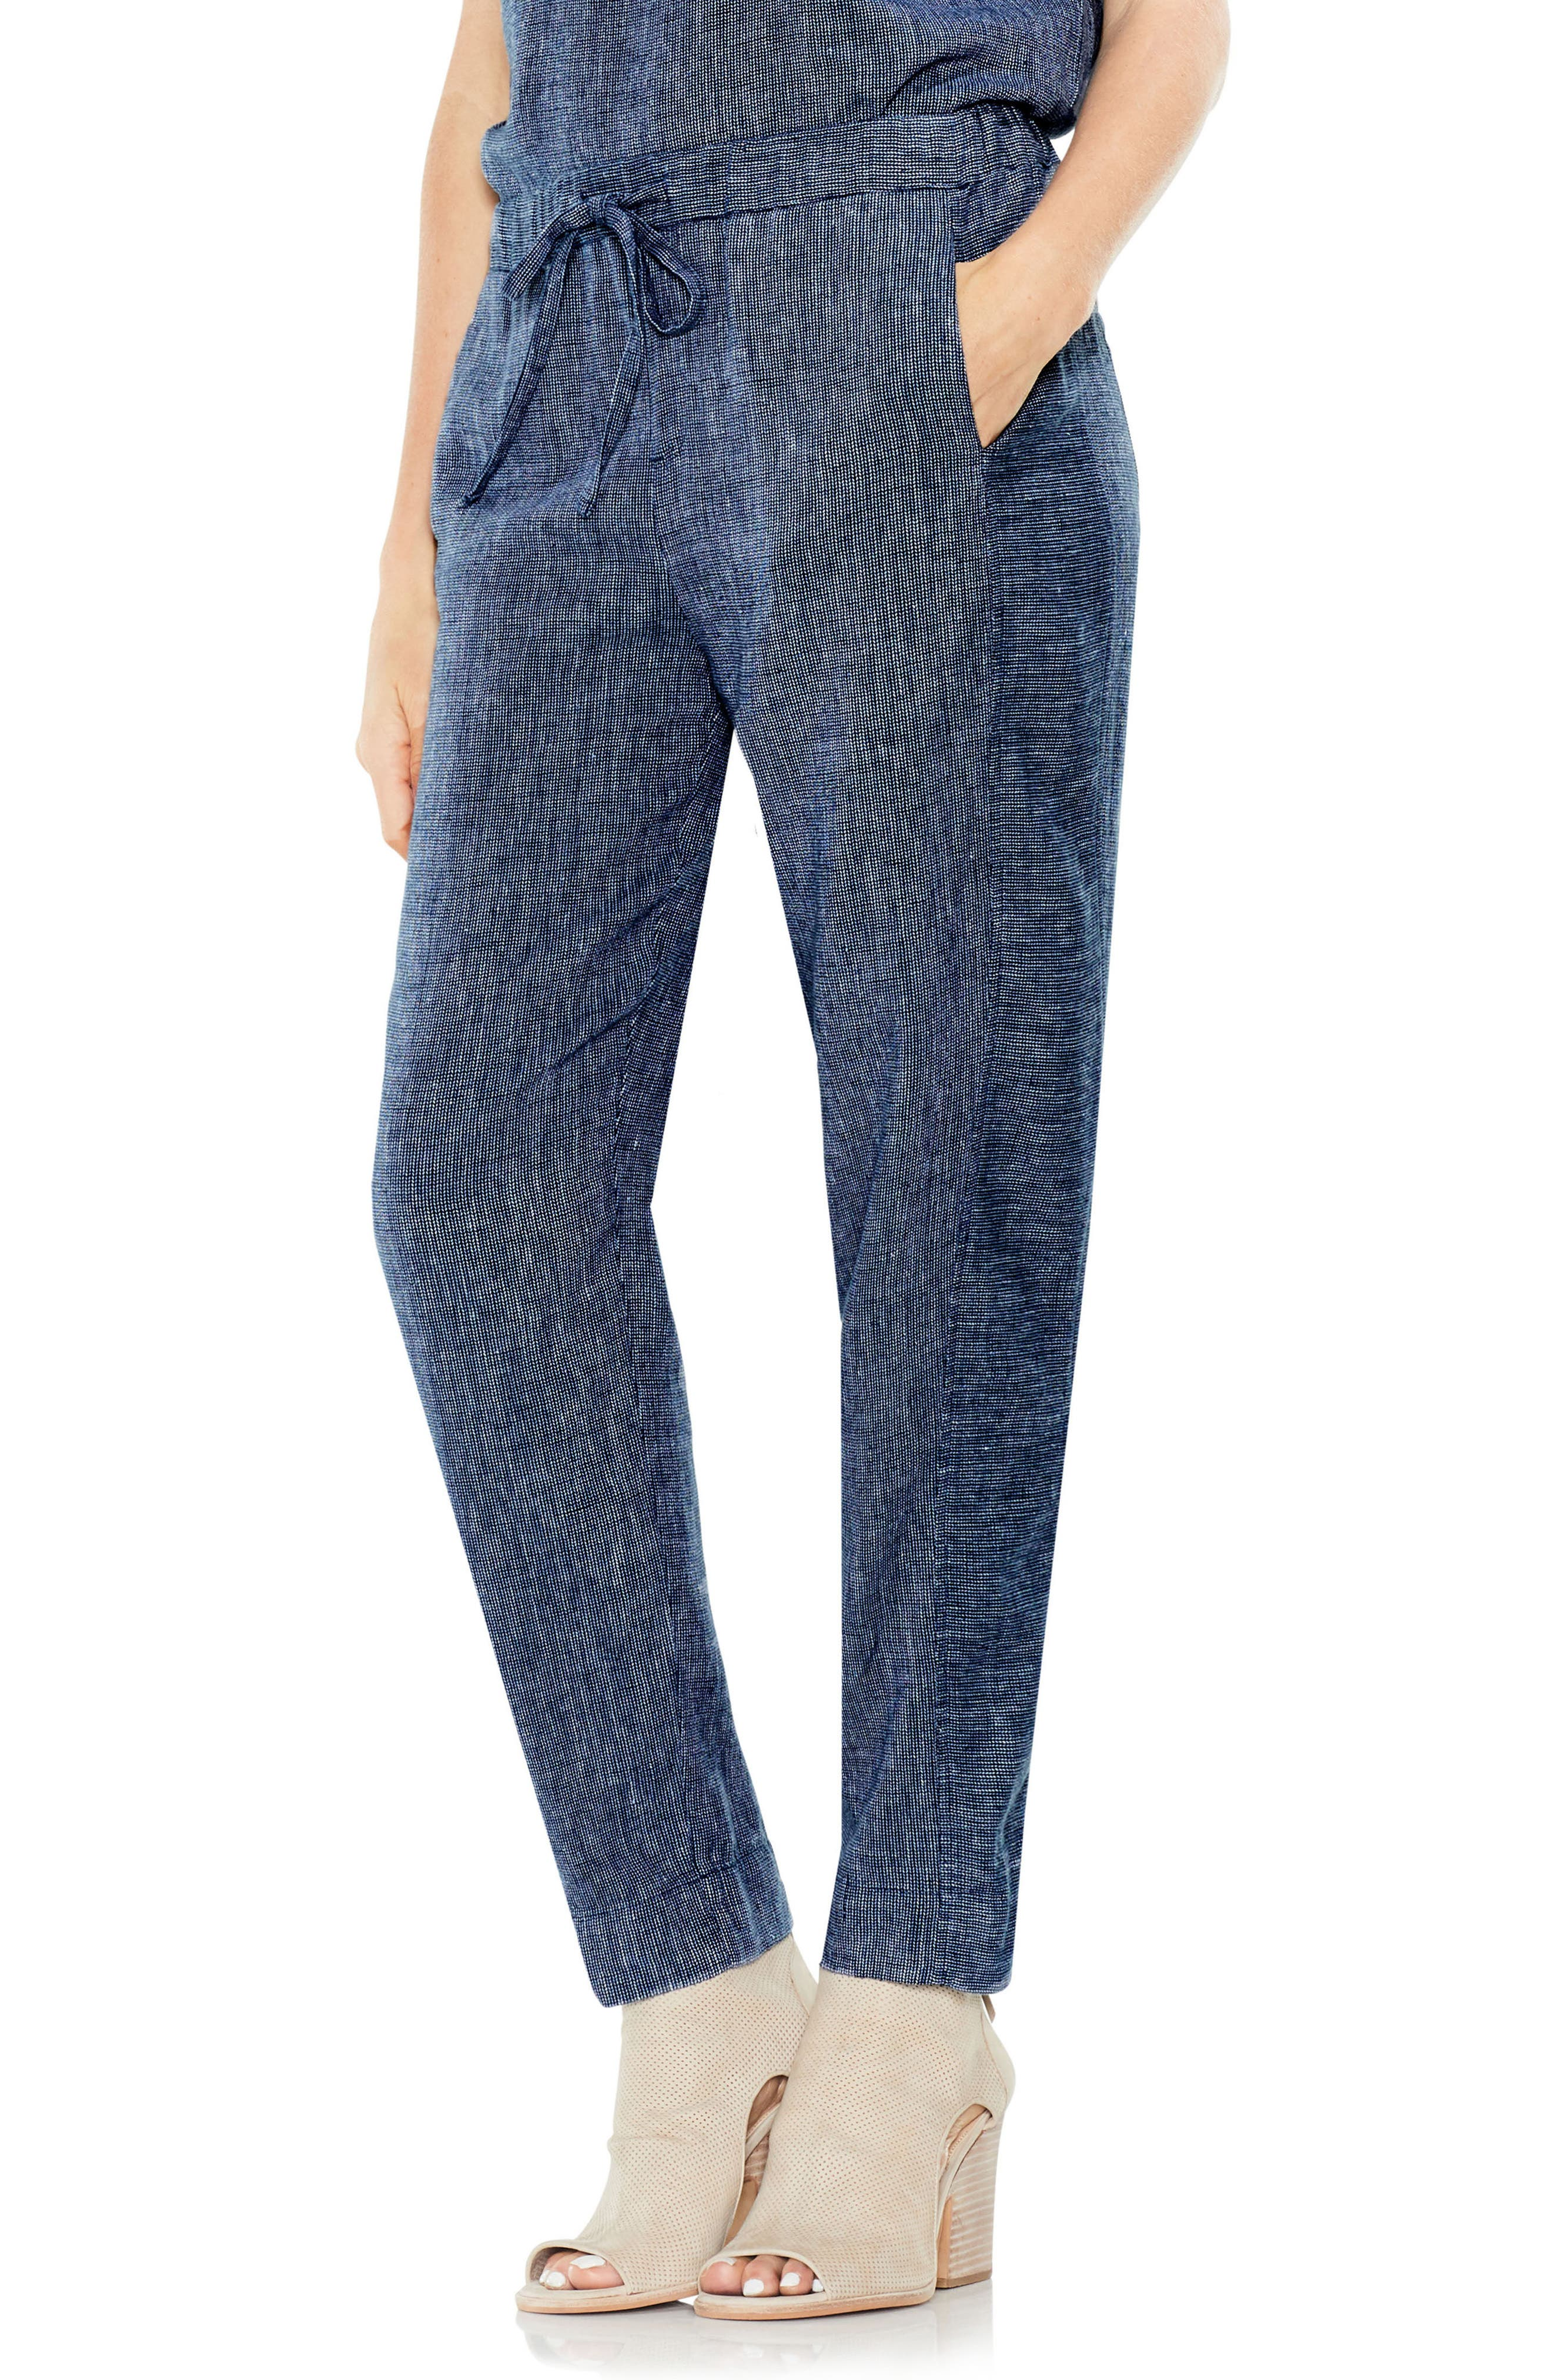 Alternate Image 1 Selected - Two by Vince Camuto Drawstring Pull-On Pants